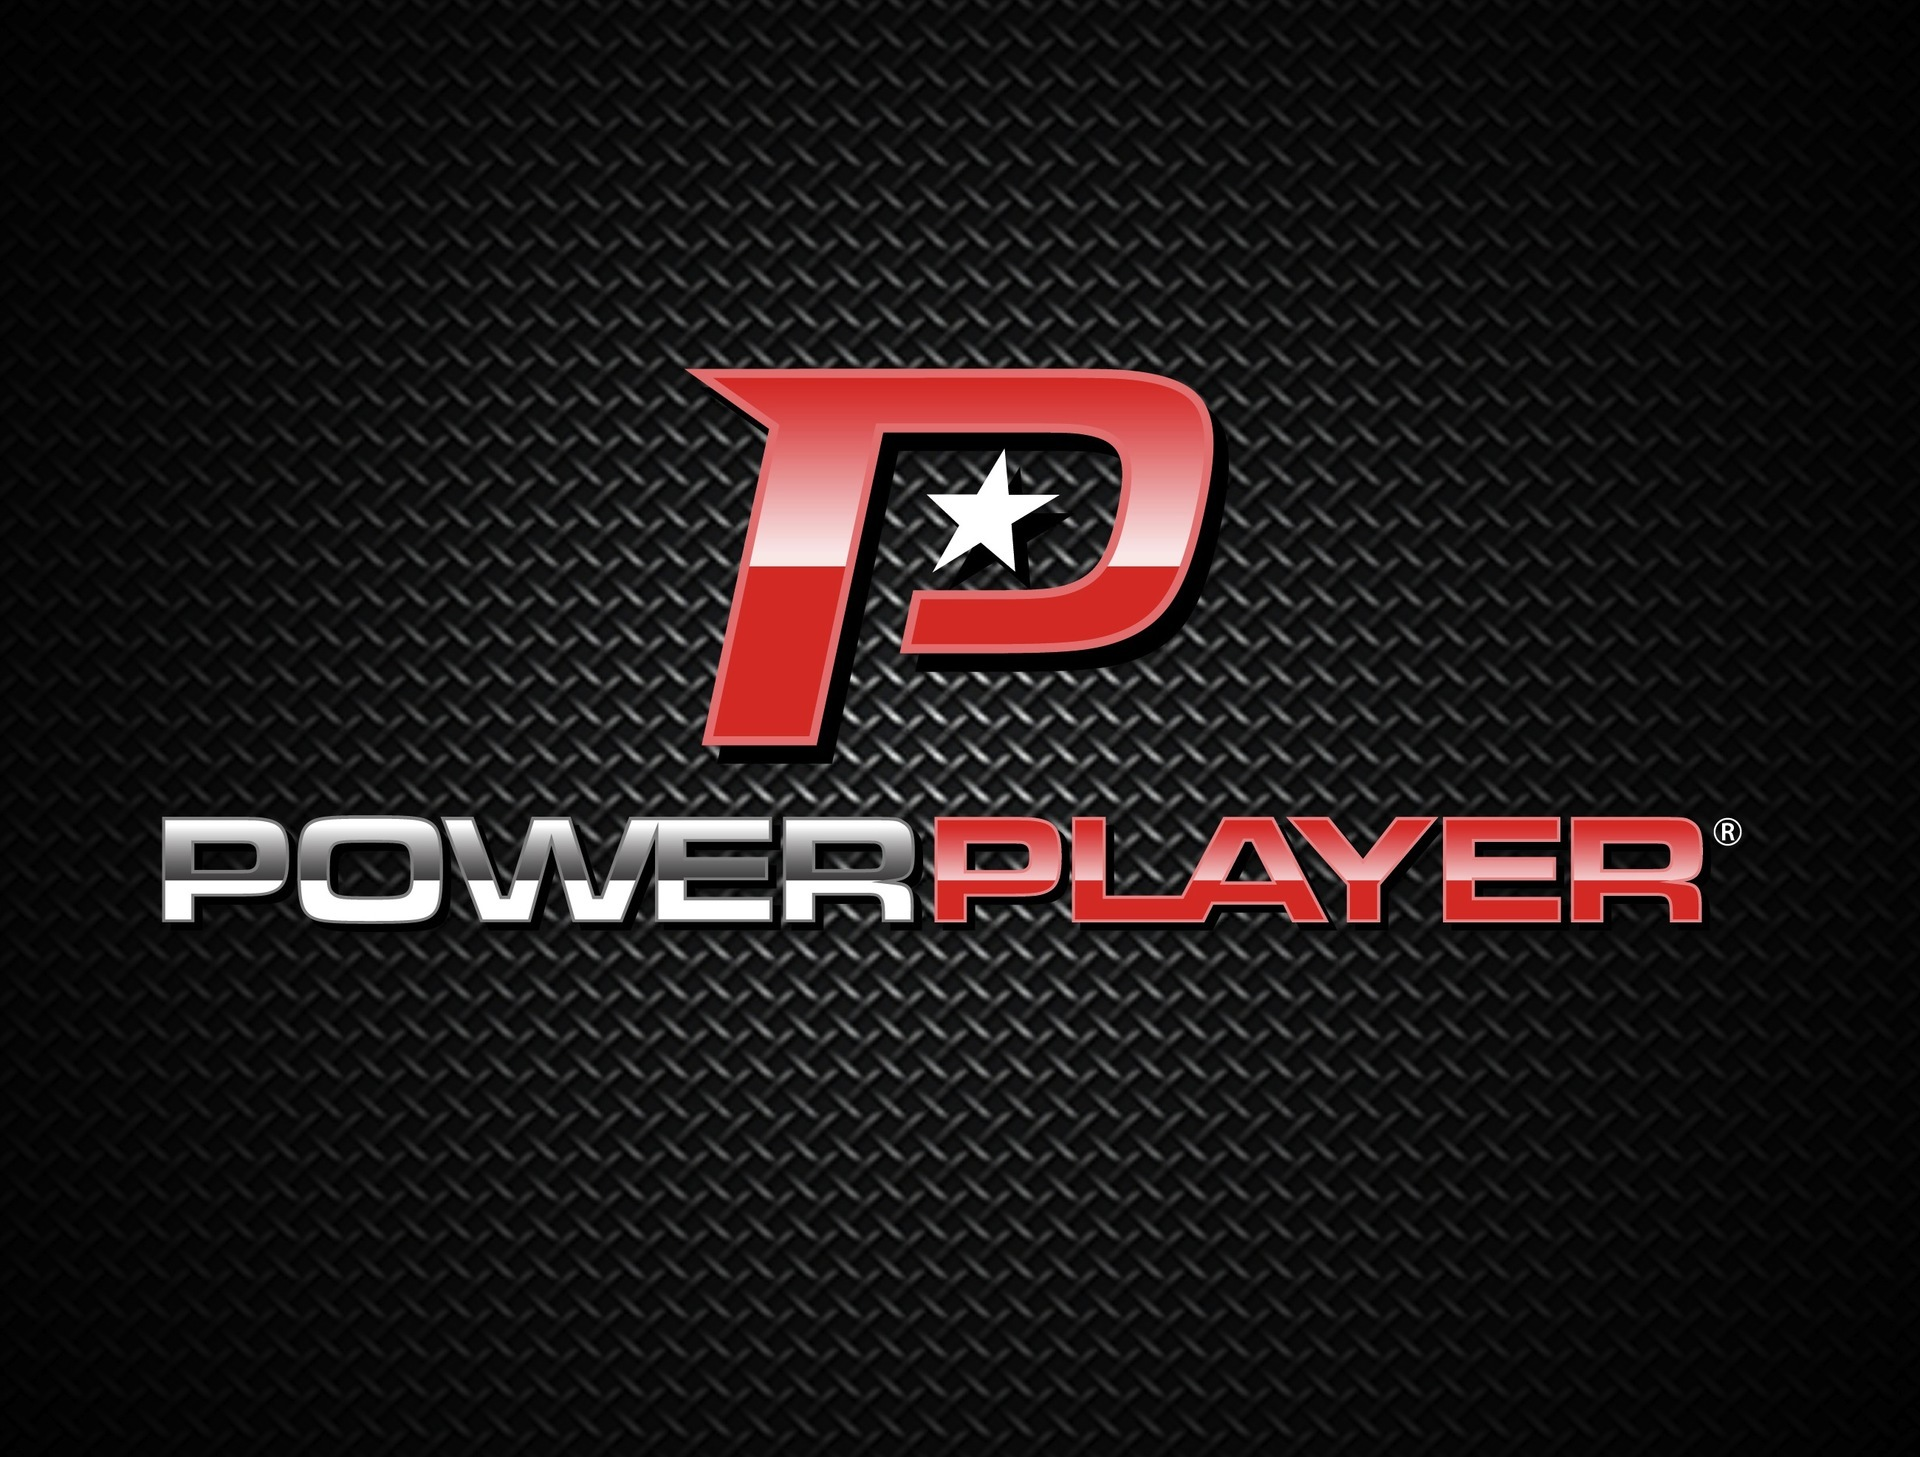 POWER PLAYER® Apparel Store